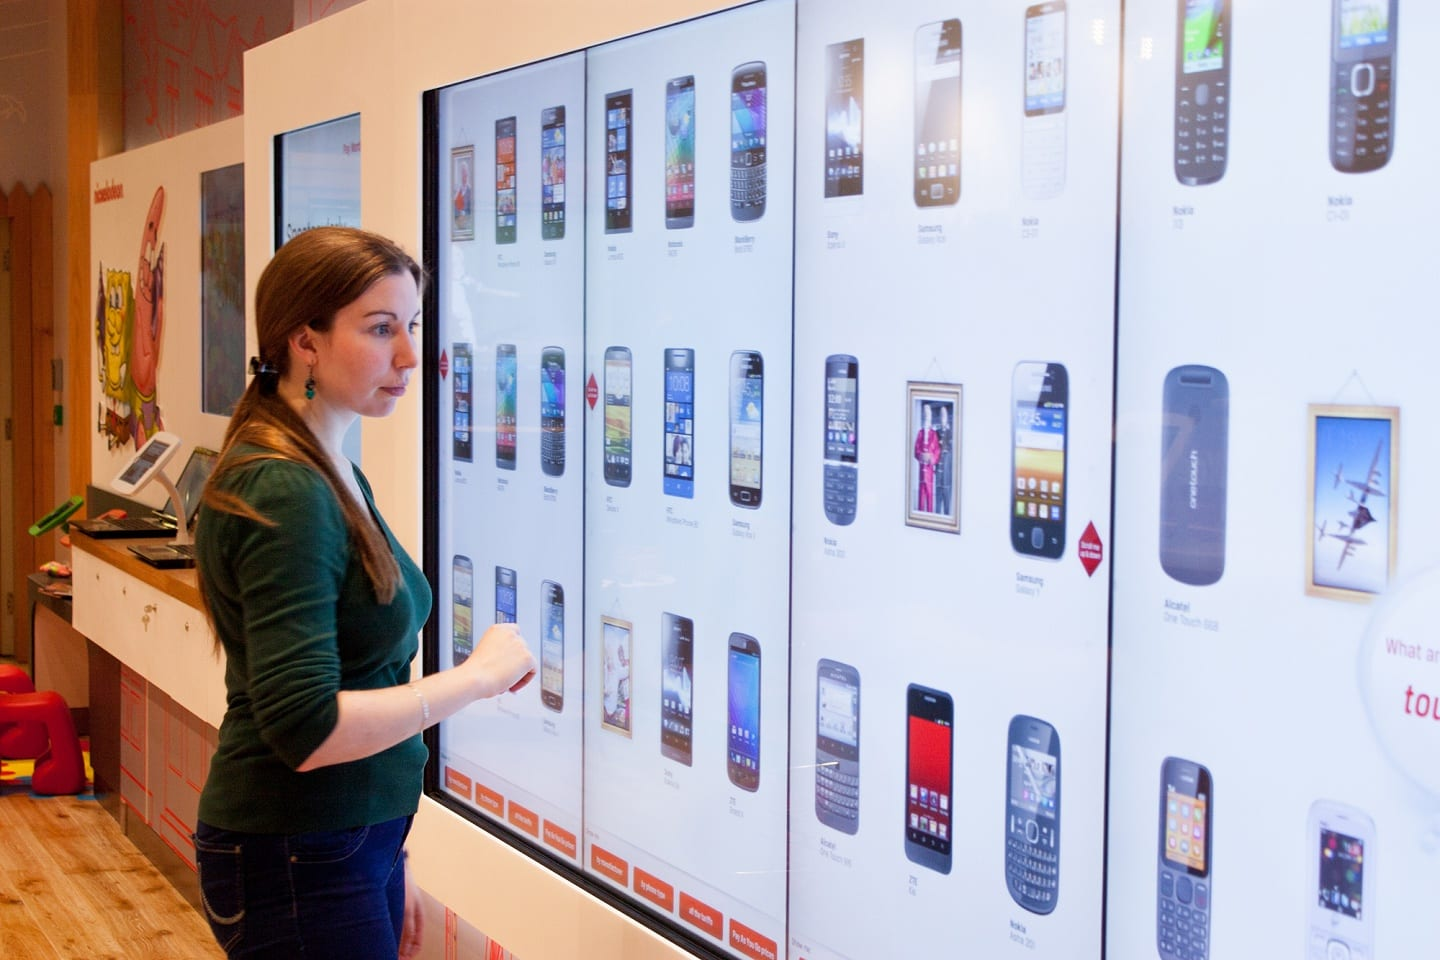 woman browsing products using an interactive touch wall display